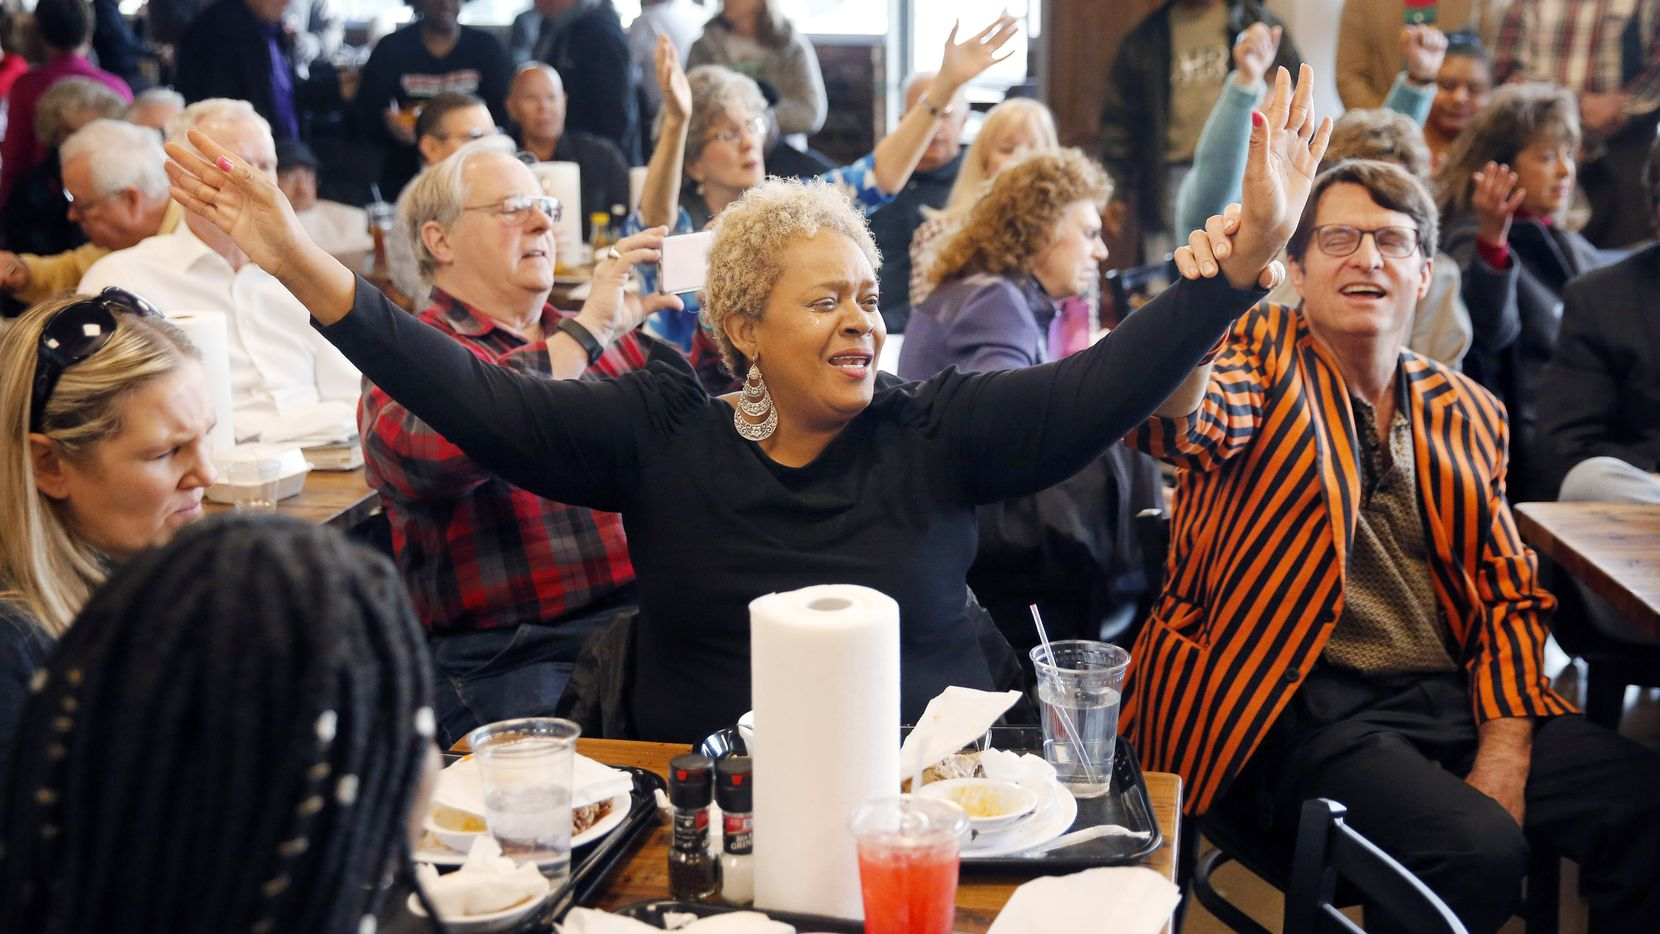 Gladys Lewis of Little Elm (center) and Brad Urschel (right) worship during the weekly Bible Study at Smokey John's Bar-B-Que and Home Cooking on Mockingbird Lane in Dallas, on Tuesday, Jan. 29, 2019. John 'Smokey' Reaves has been doing Tuesday Bible study at his barbecue joint since 1982.  A fire in 2017 destroyed the restaurant, which re-opened this week after much restoration.